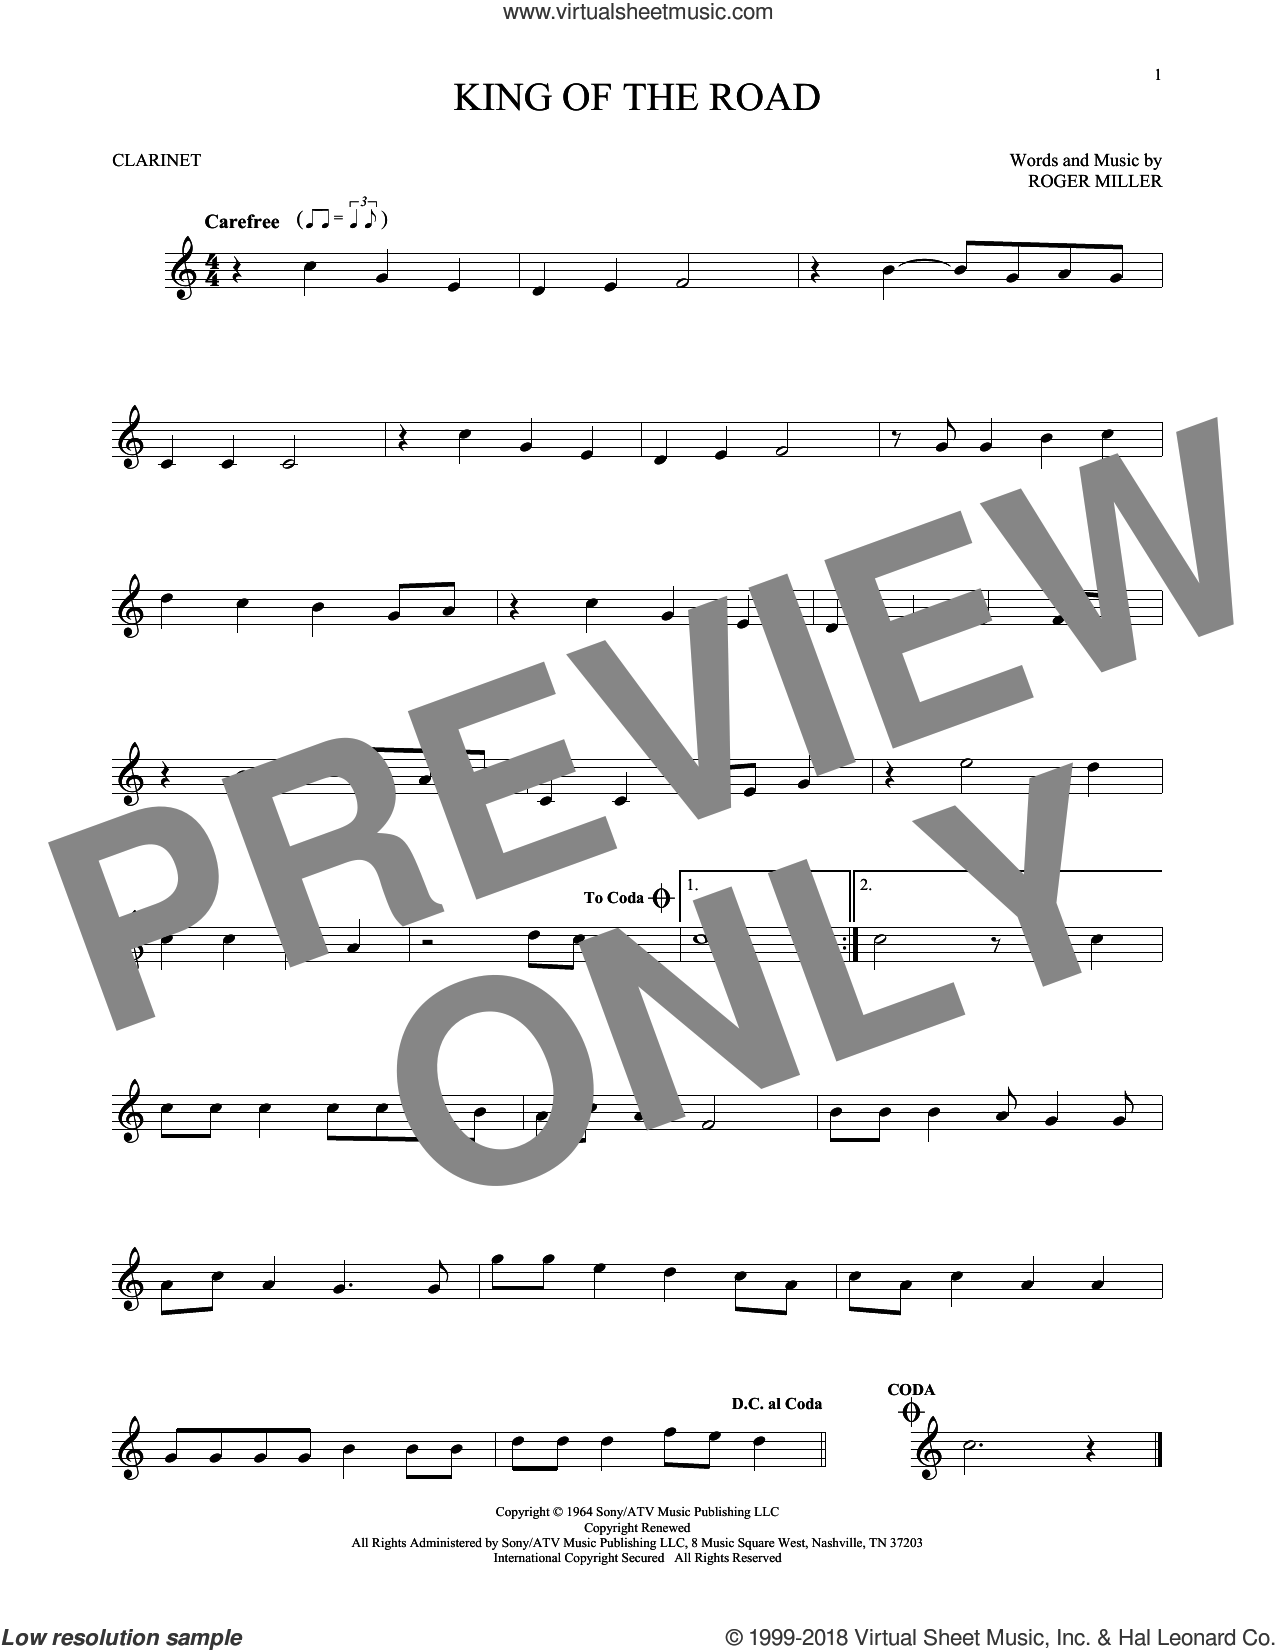 King Of The Road sheet music for clarinet solo by Roger Miller and Randy Travis, intermediate skill level